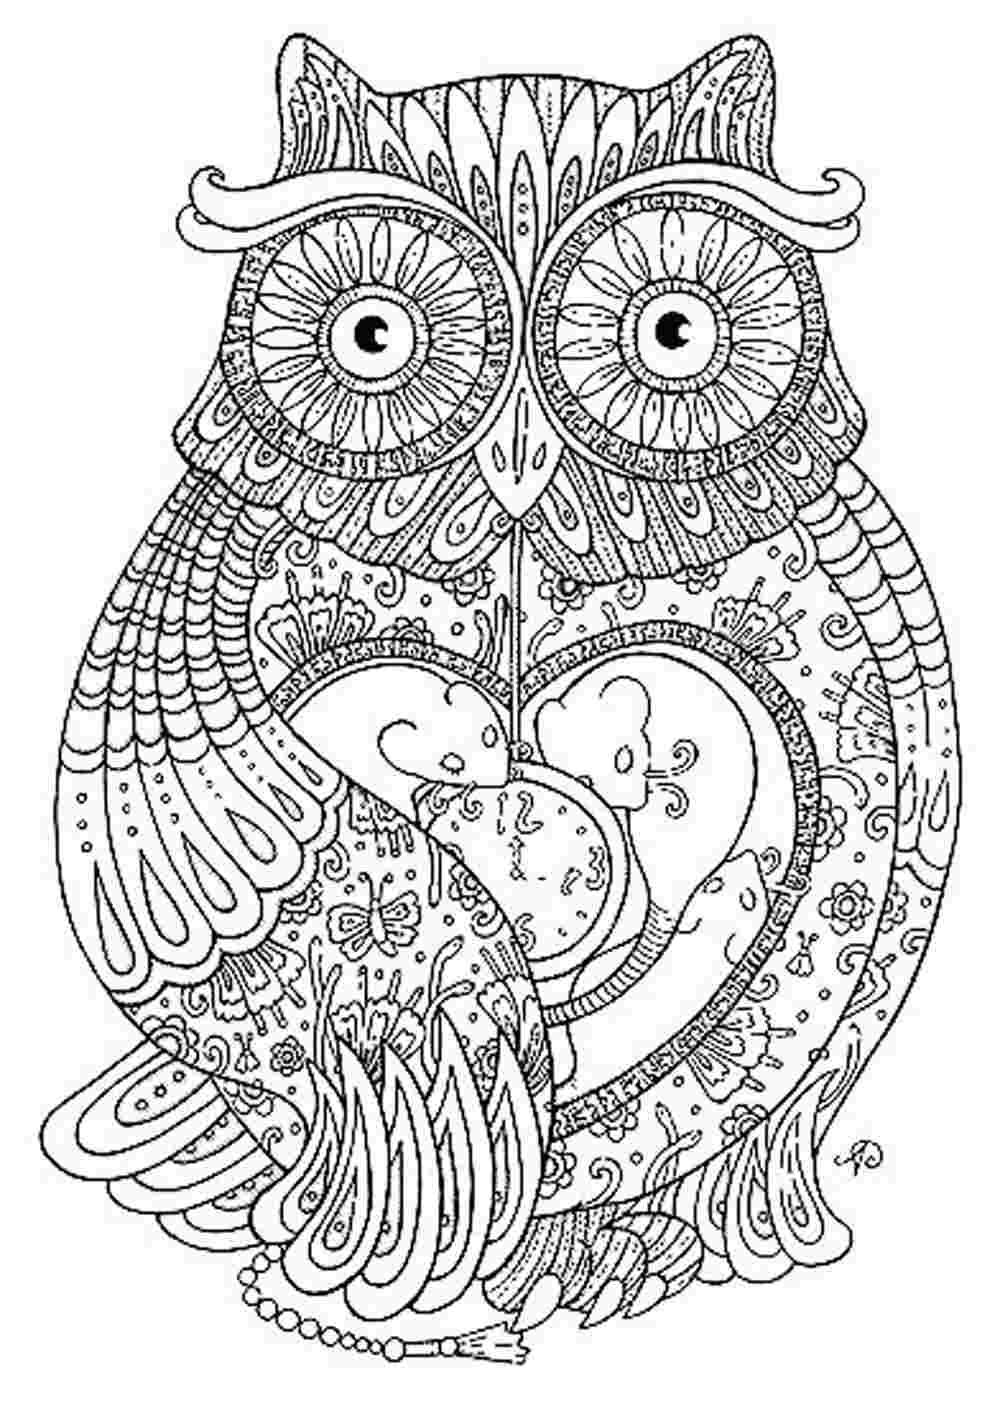 coloring adults adult coloring page coloring home adults coloring 1 1